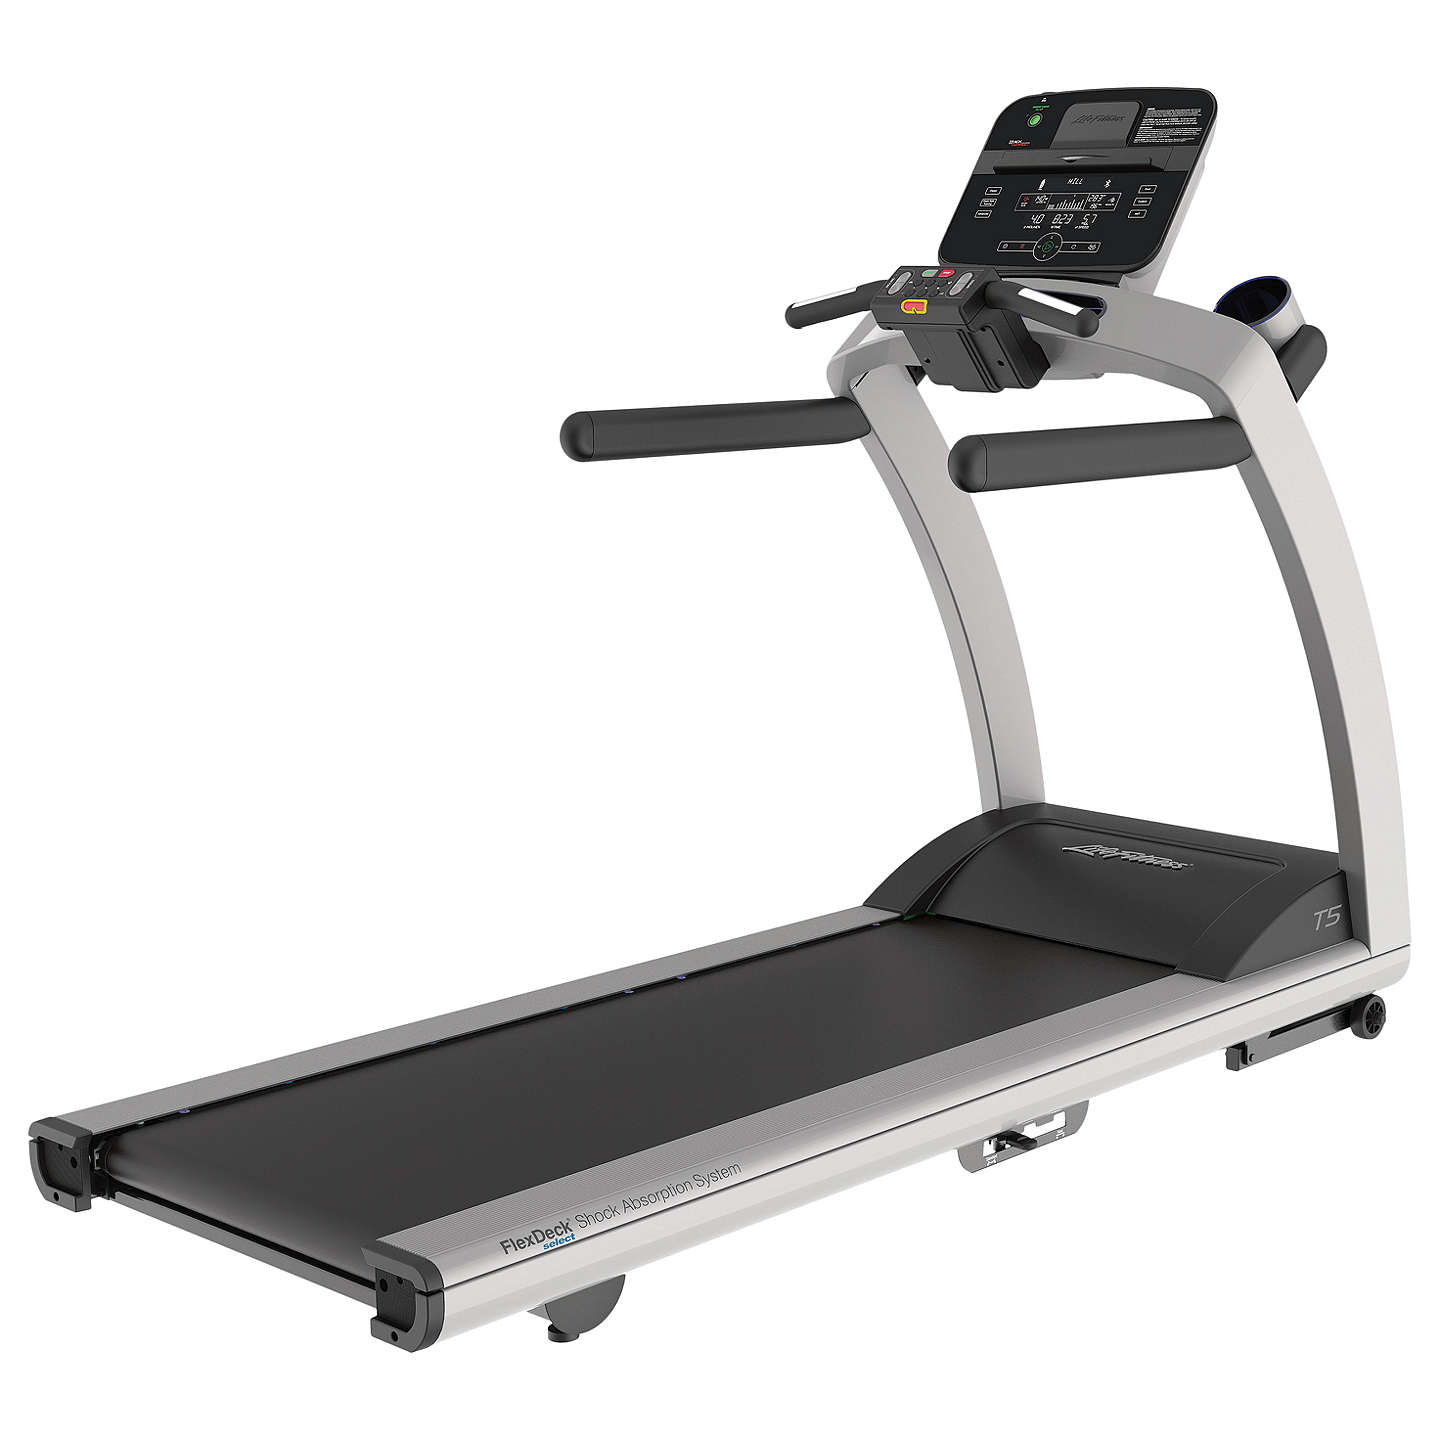 Gym Equipment John Lewis: Life Fitness T5 Treadmill, Track Connect Console, Silver